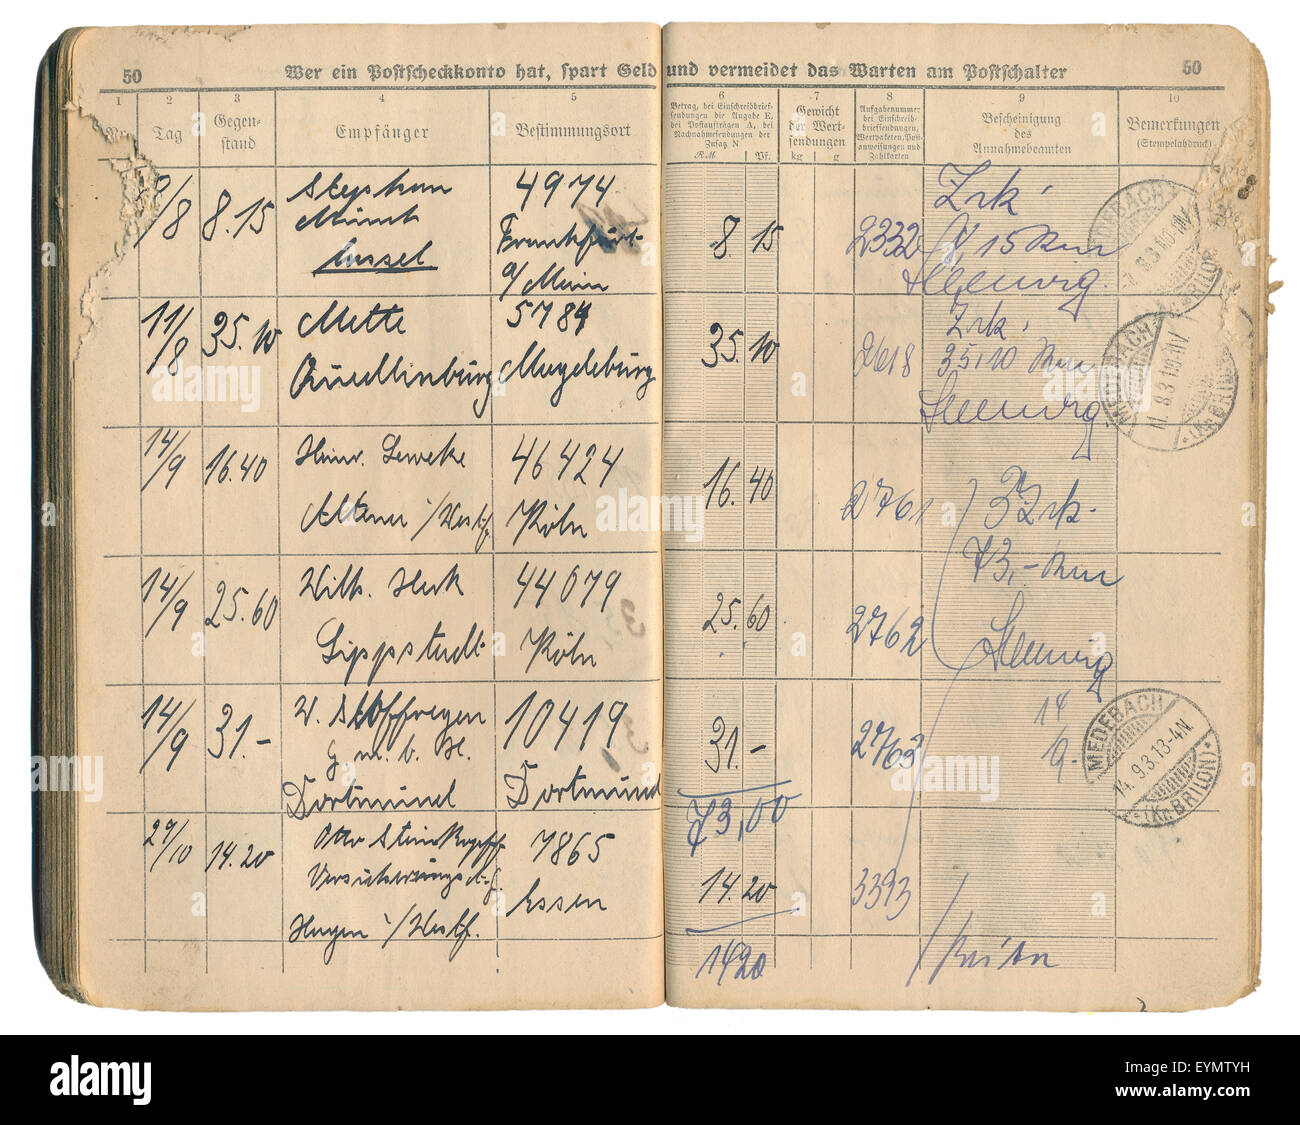 Old German post office recorded delivery book from 1931, recording of entries and signatures, German Empire, Europe, - Stock Image